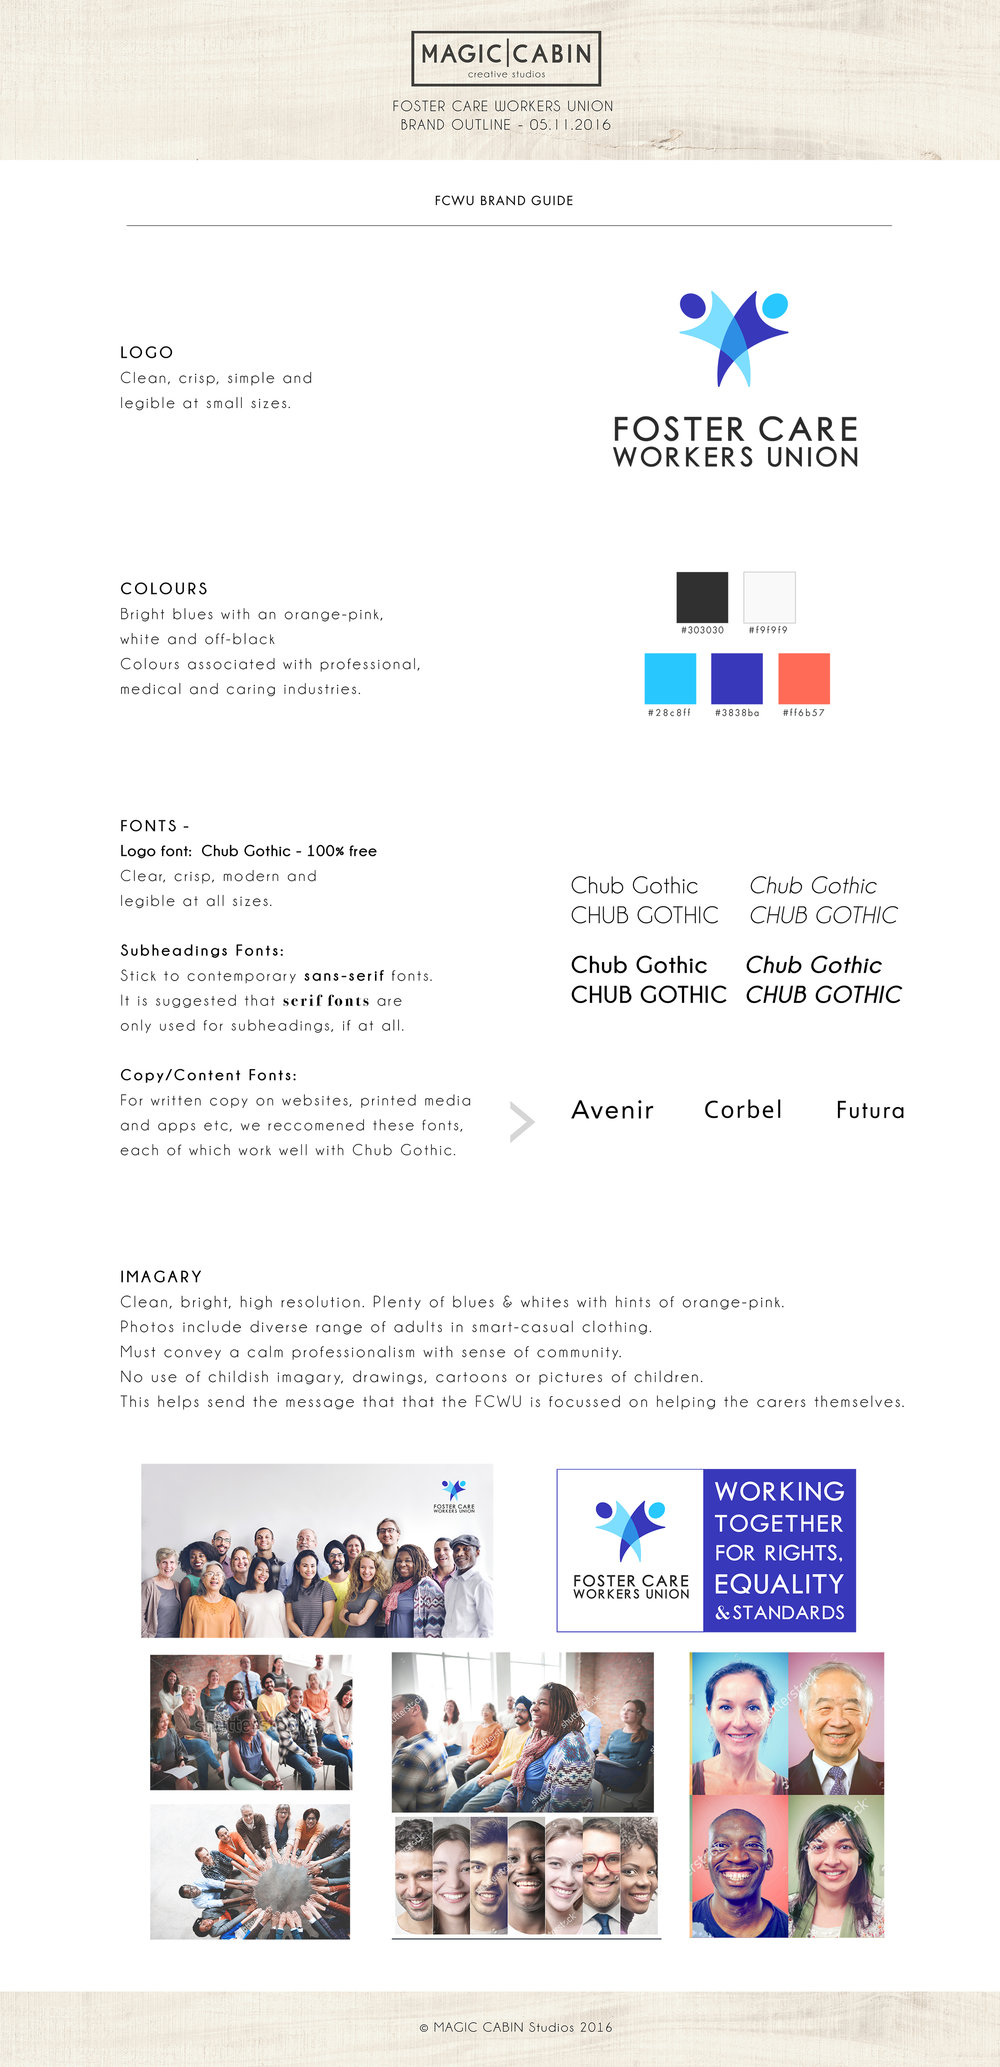 foster care workers union brand guide design sheet